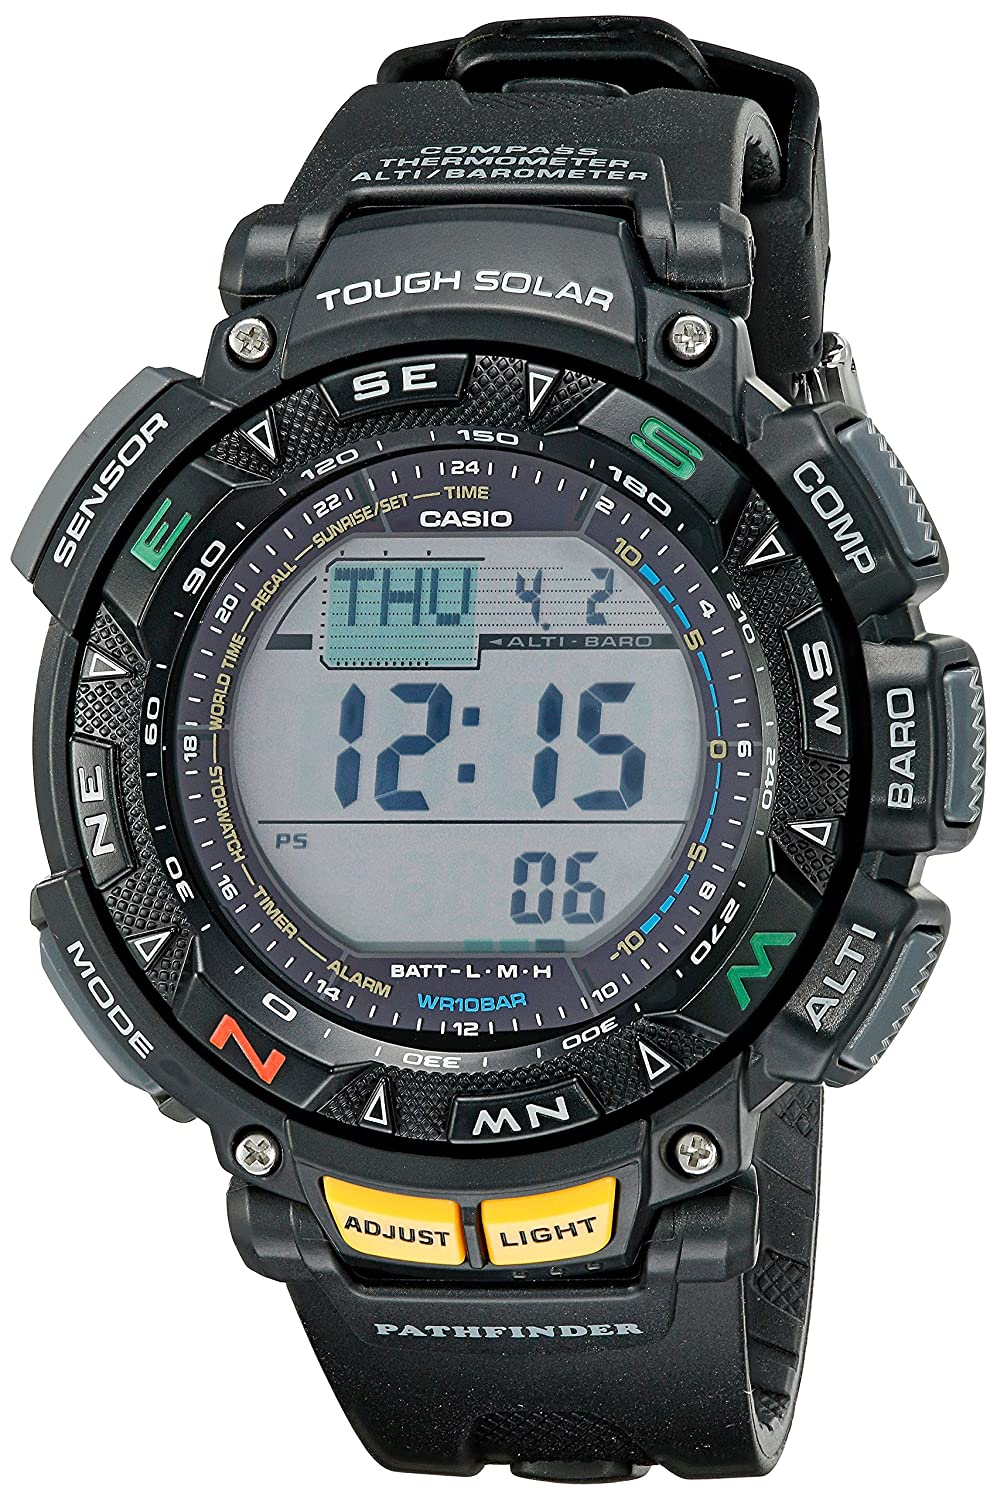 a601ccf35e37 Amazon.com  Casio Men s Pathfinder PAG240-1CR Solar Powered Triple Sensor  Sport Watch  Casio  Watches